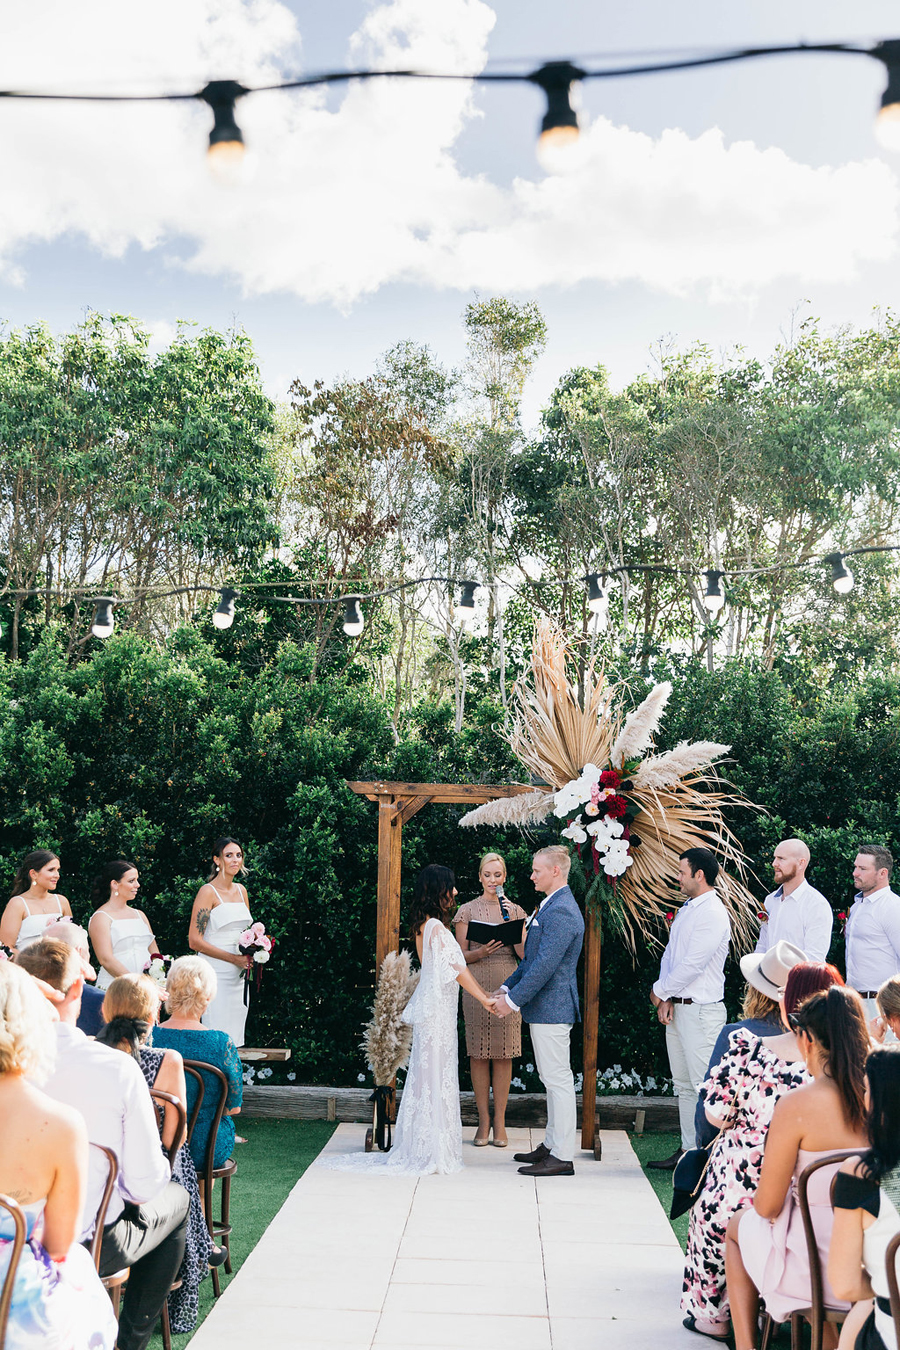 tweed-coast-weddings-wedding-venue-osteria-casuarina-garden-ceremony-reception-coastal-elyse-peter023.jpg